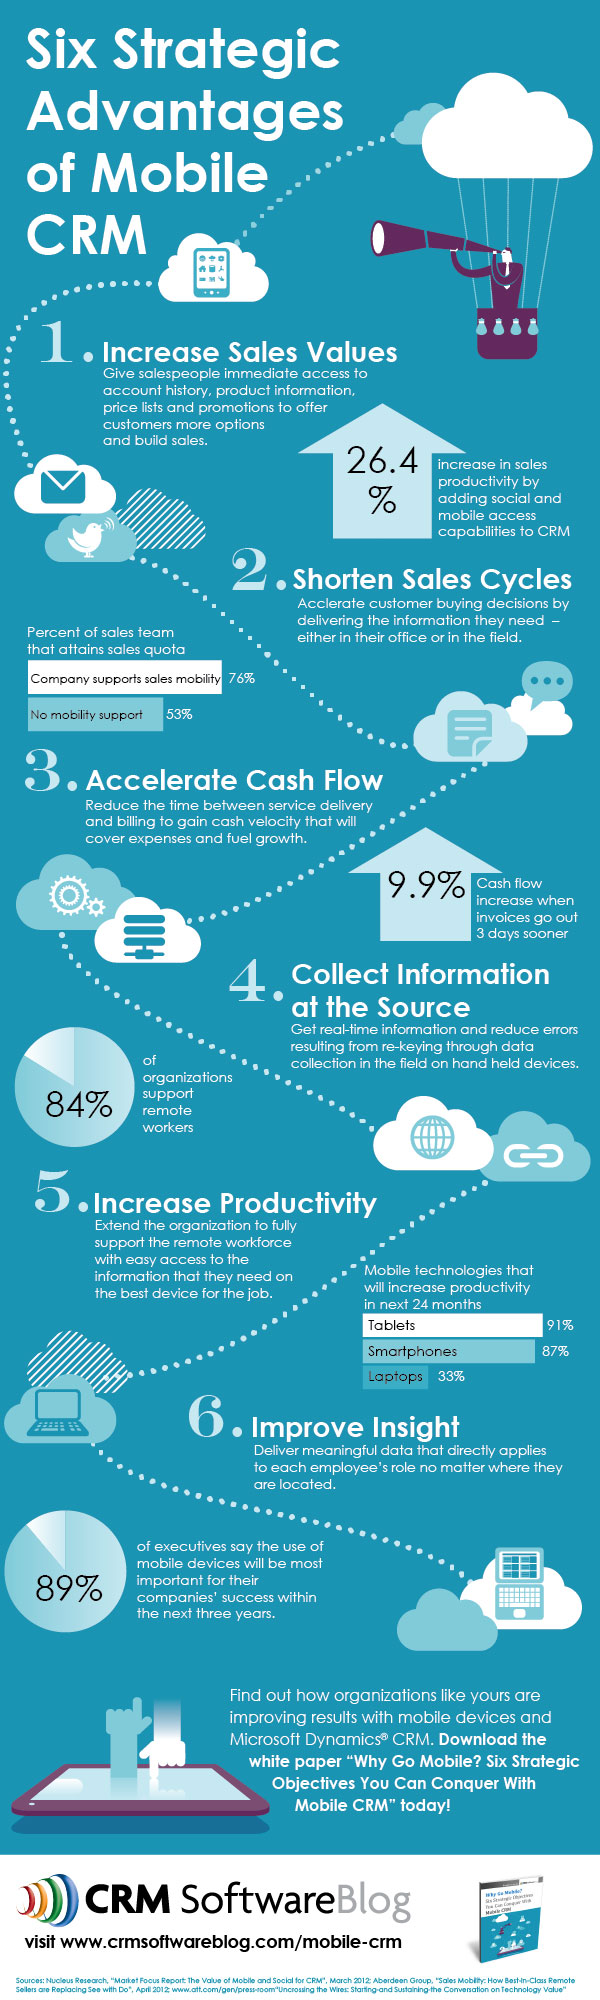 CRM_Mobile_Infographic_final